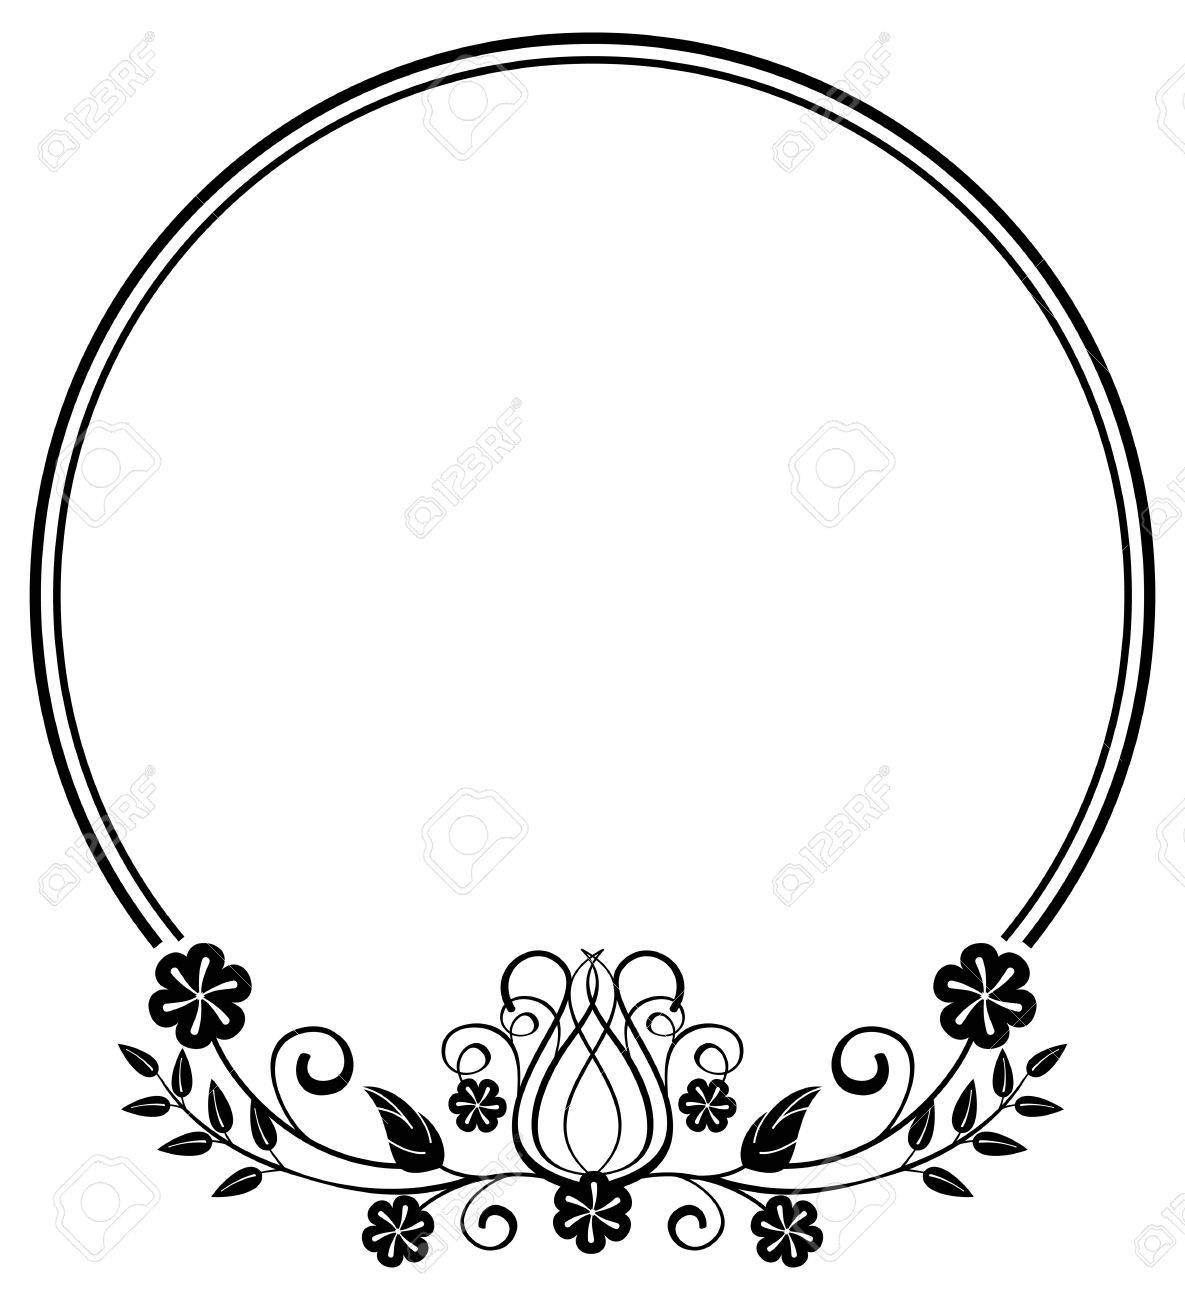 Circle Frame Black And White Clipart